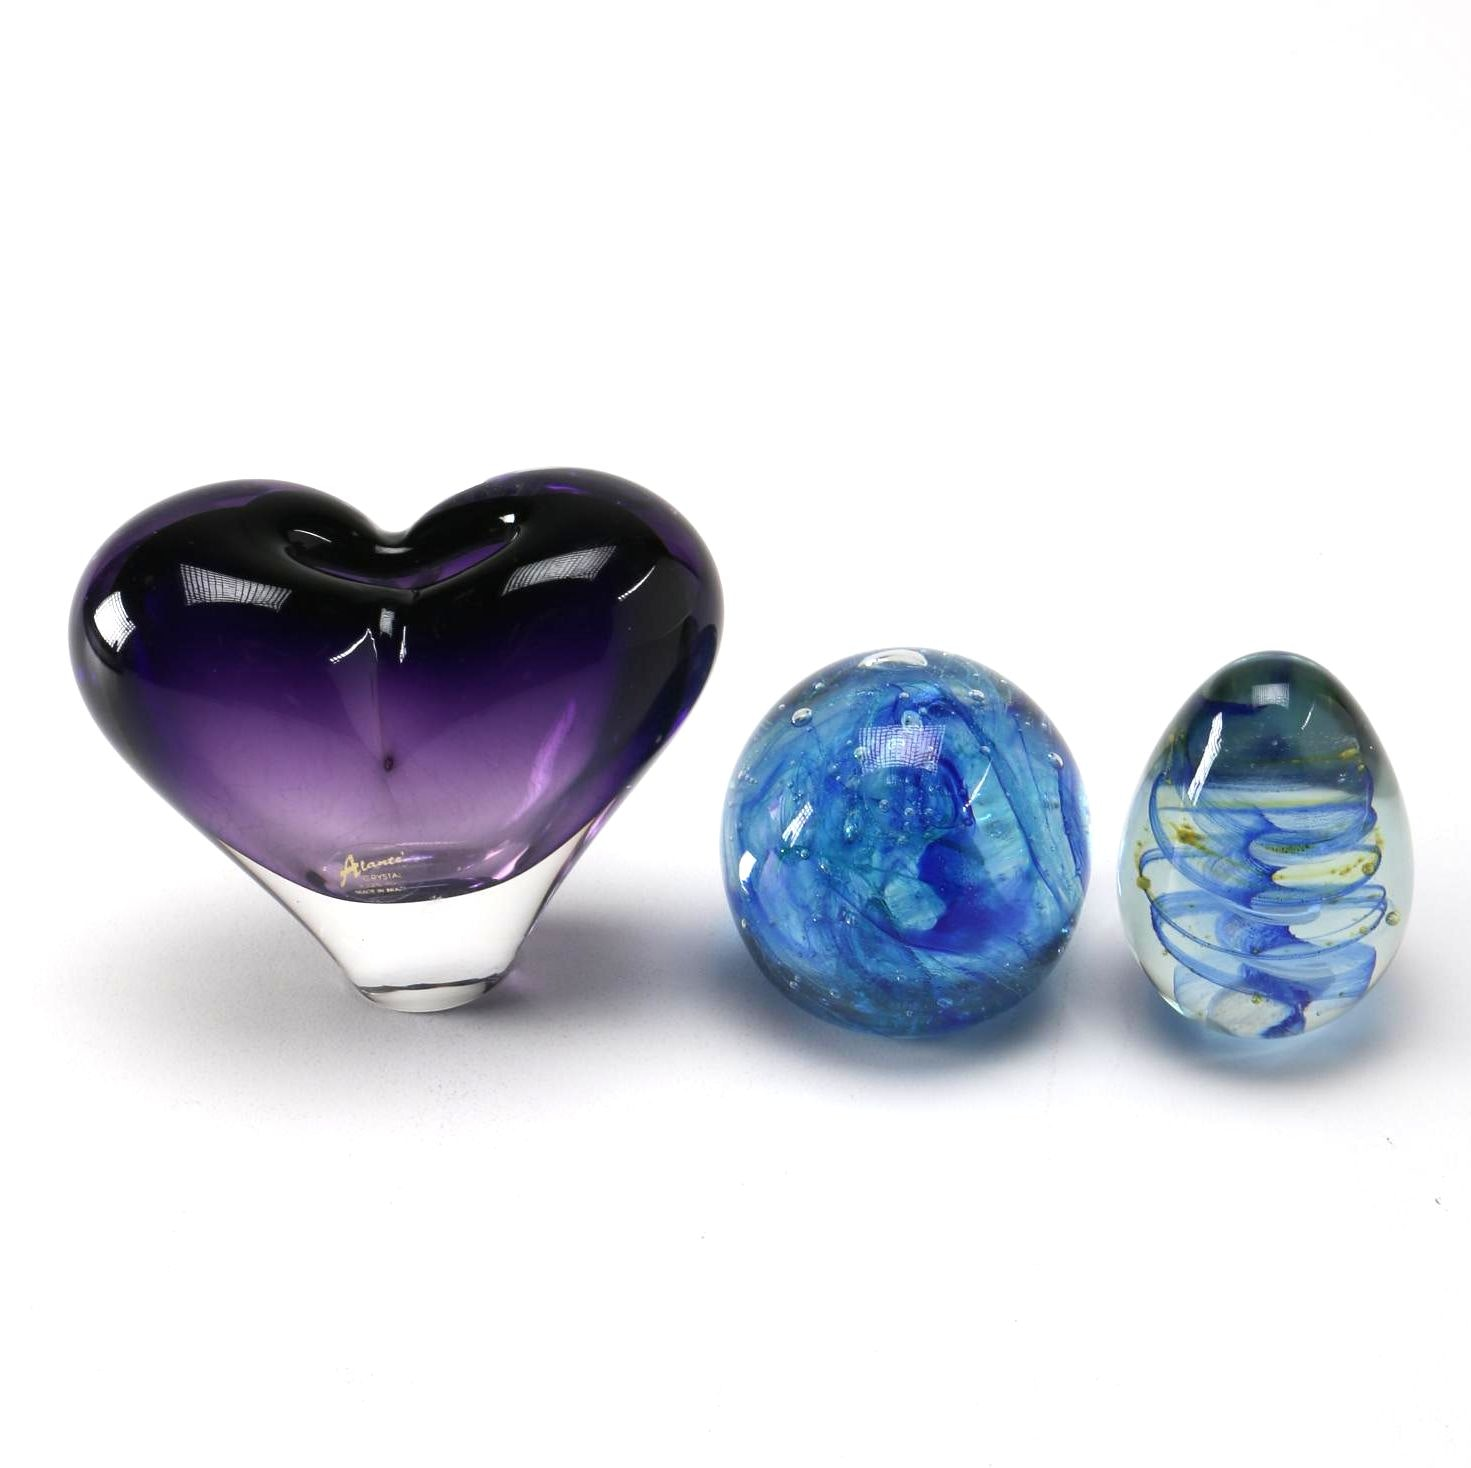 Hand Blown Art Glass With Crystal by Alante